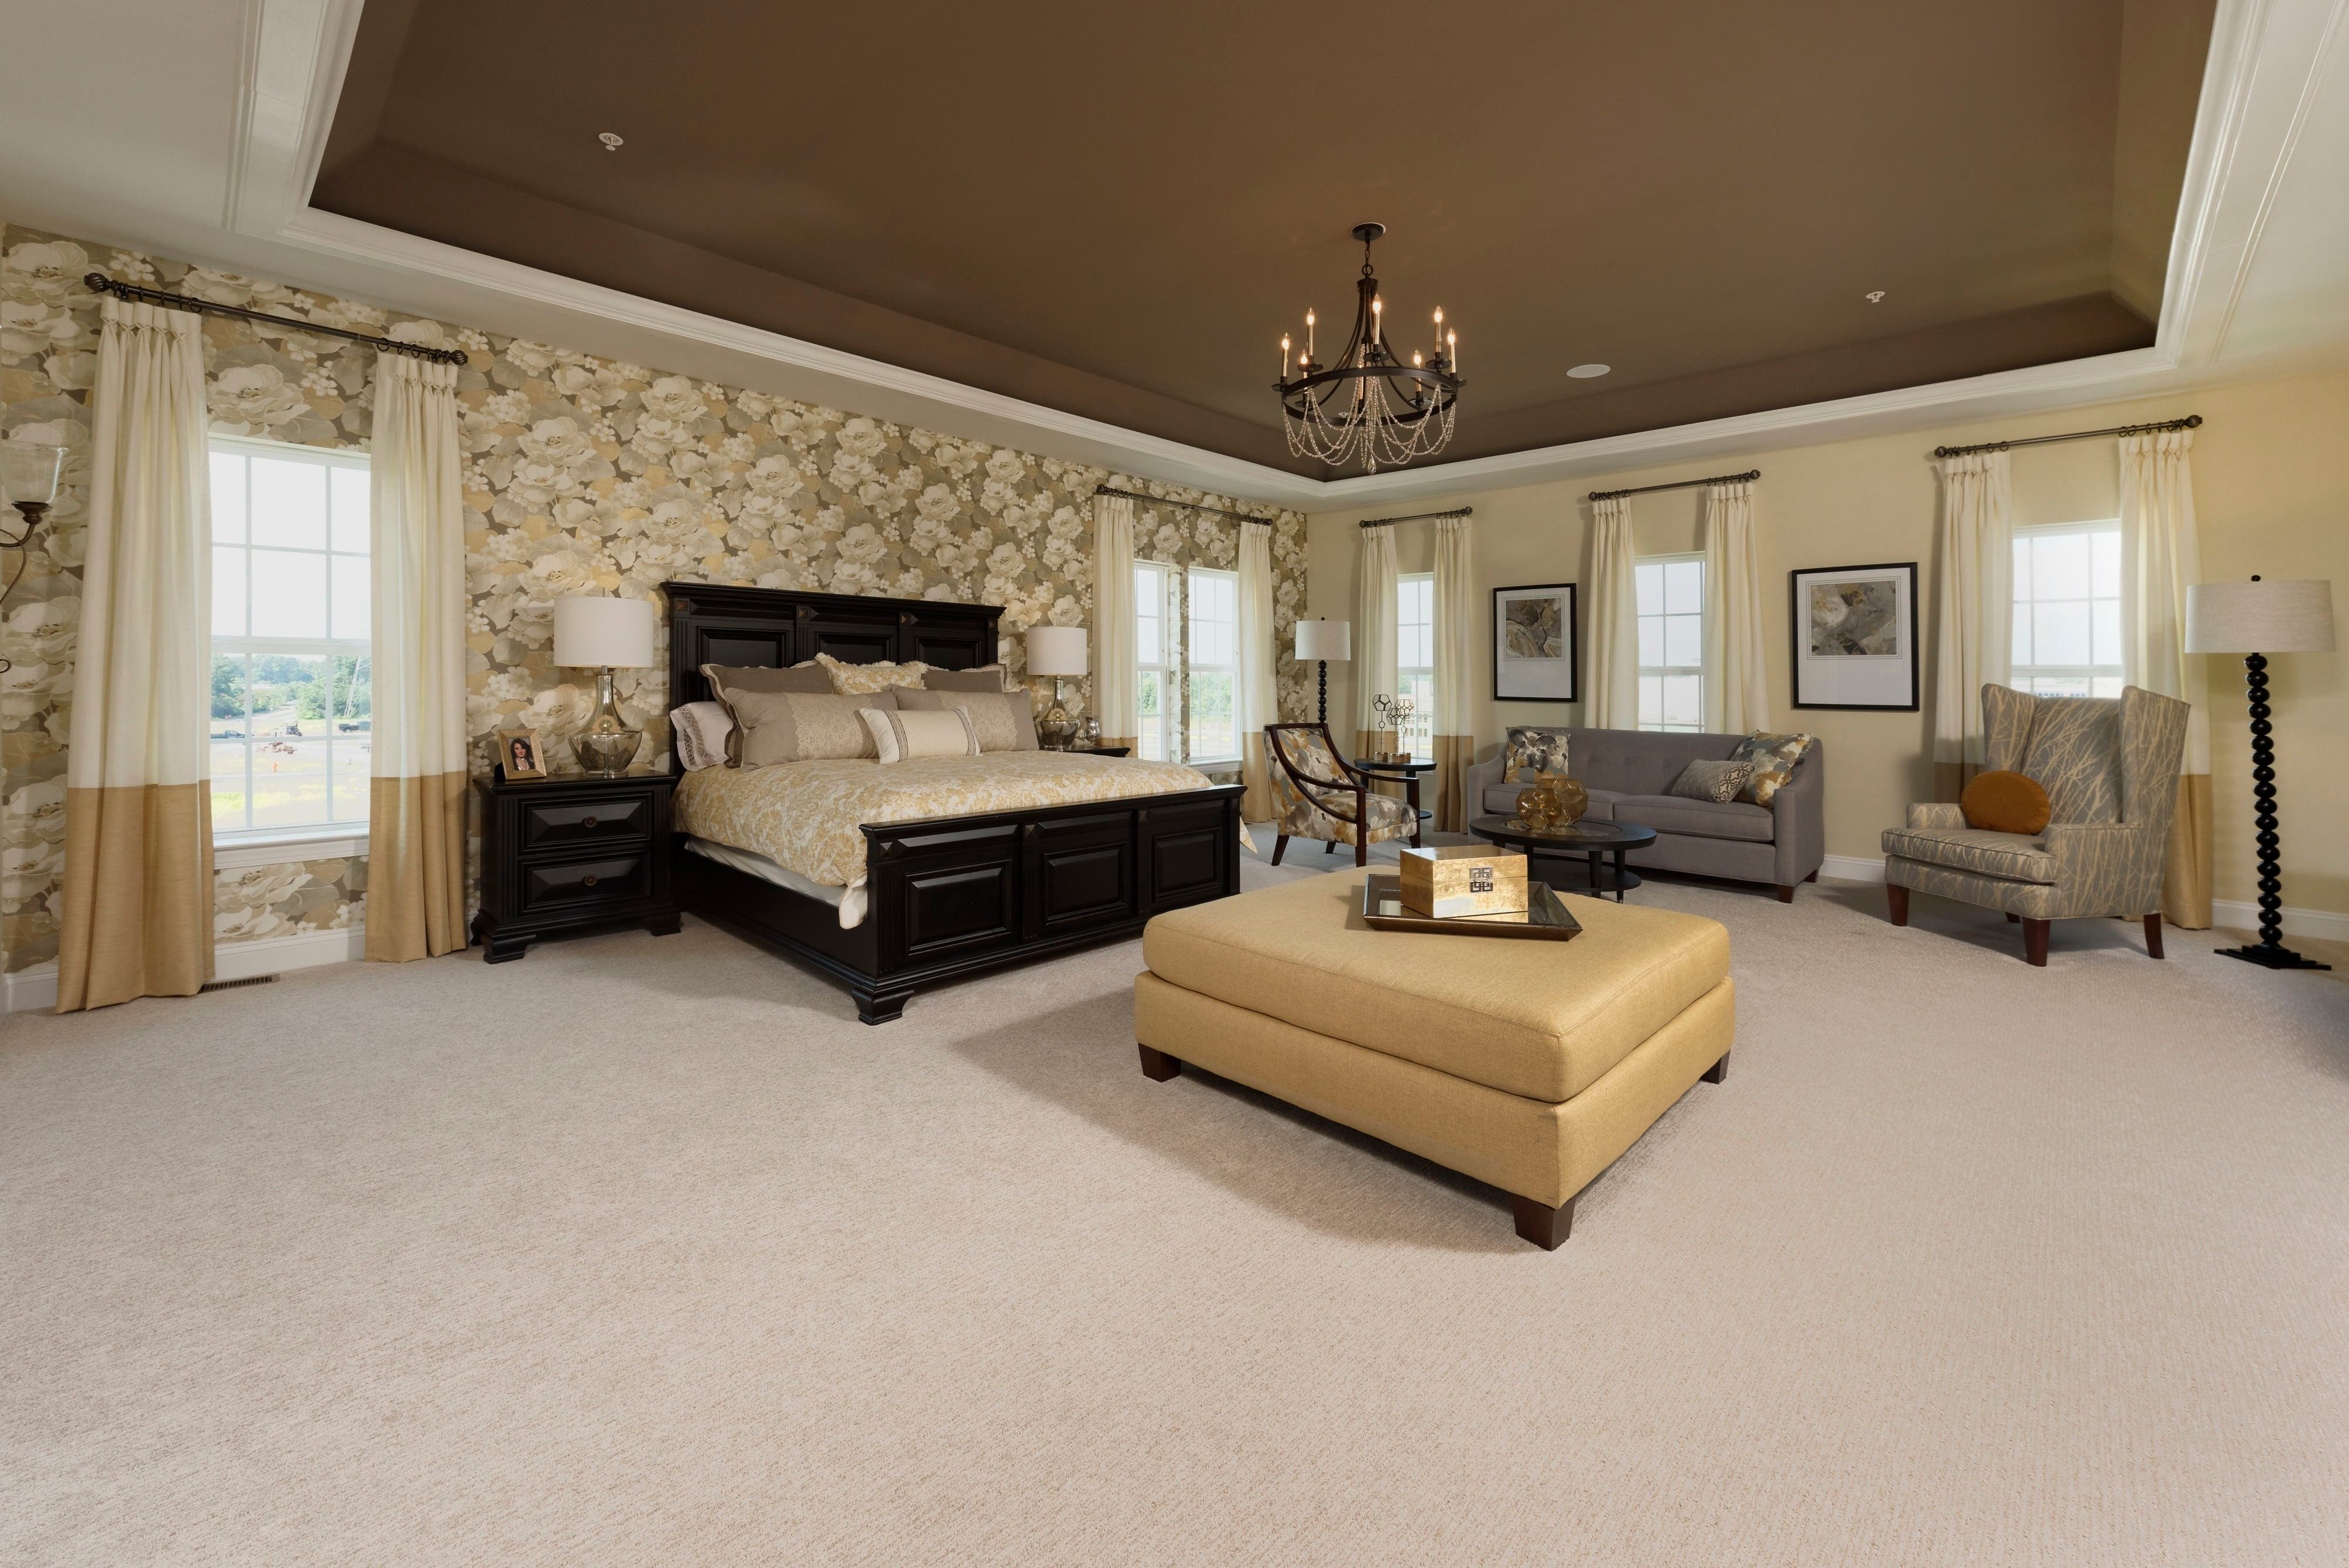 Bedroom featured in the Federal Hill By Williamsburg Homes LLC in Baltimore, MD